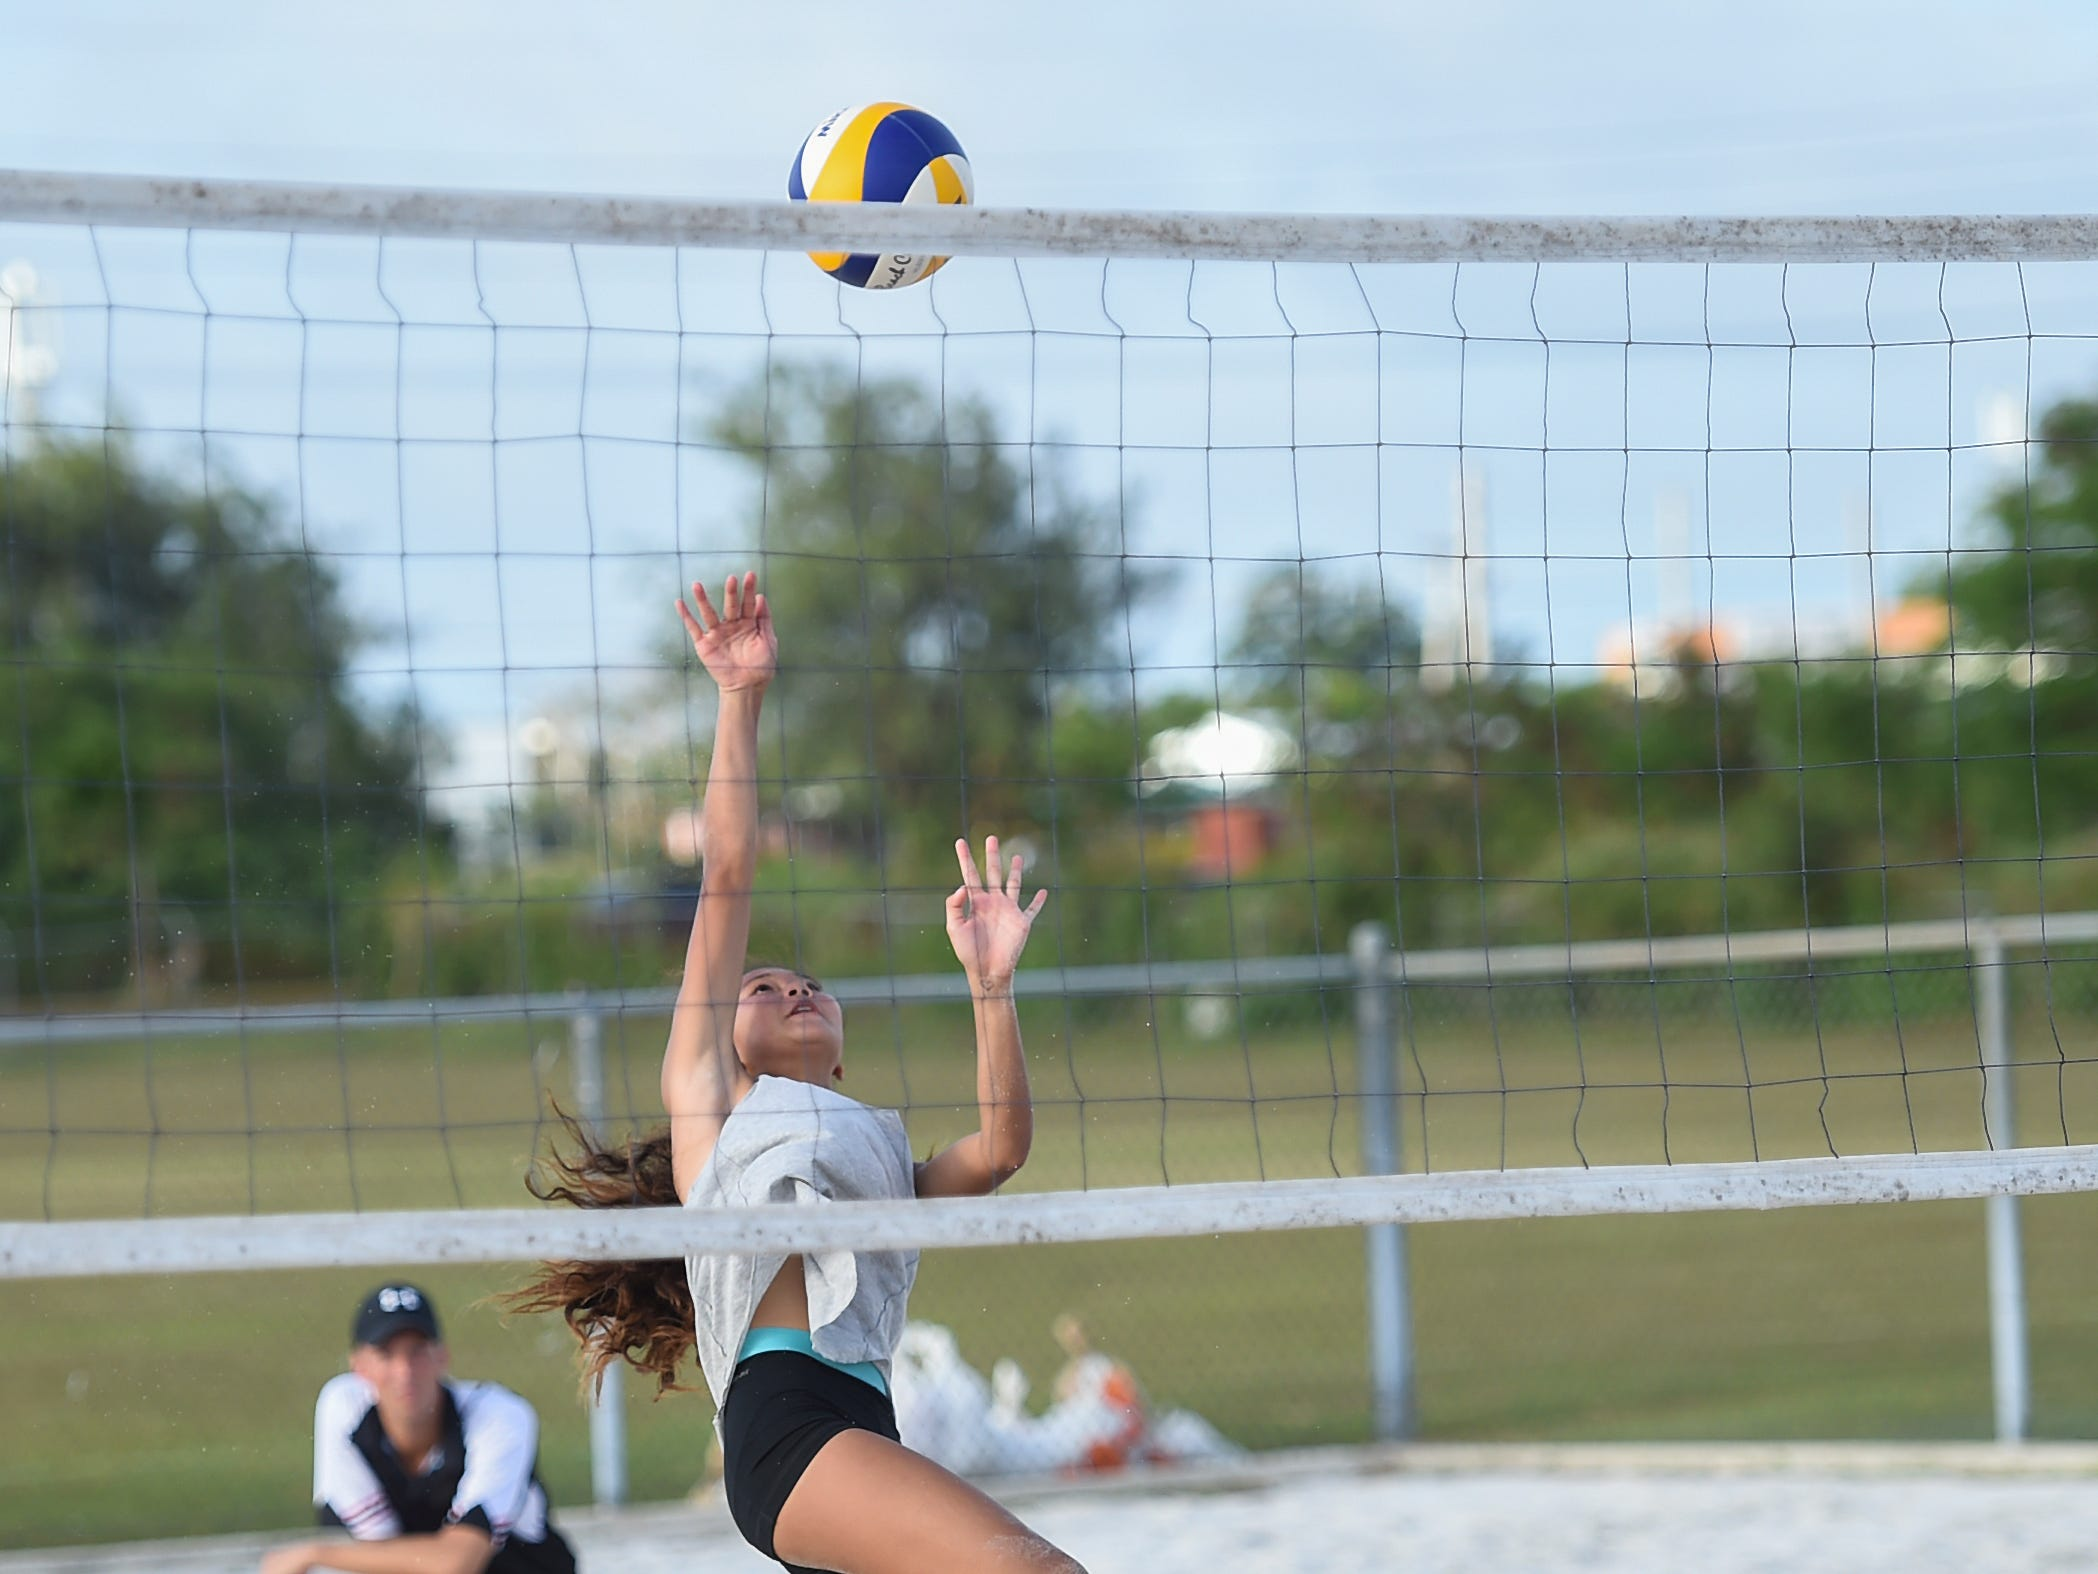 Yasmeen Lopez volleys during the IIAAG Beach Volleyball championship game at the Guam Football Association National Training Center in Dededo, March 12, 2019.